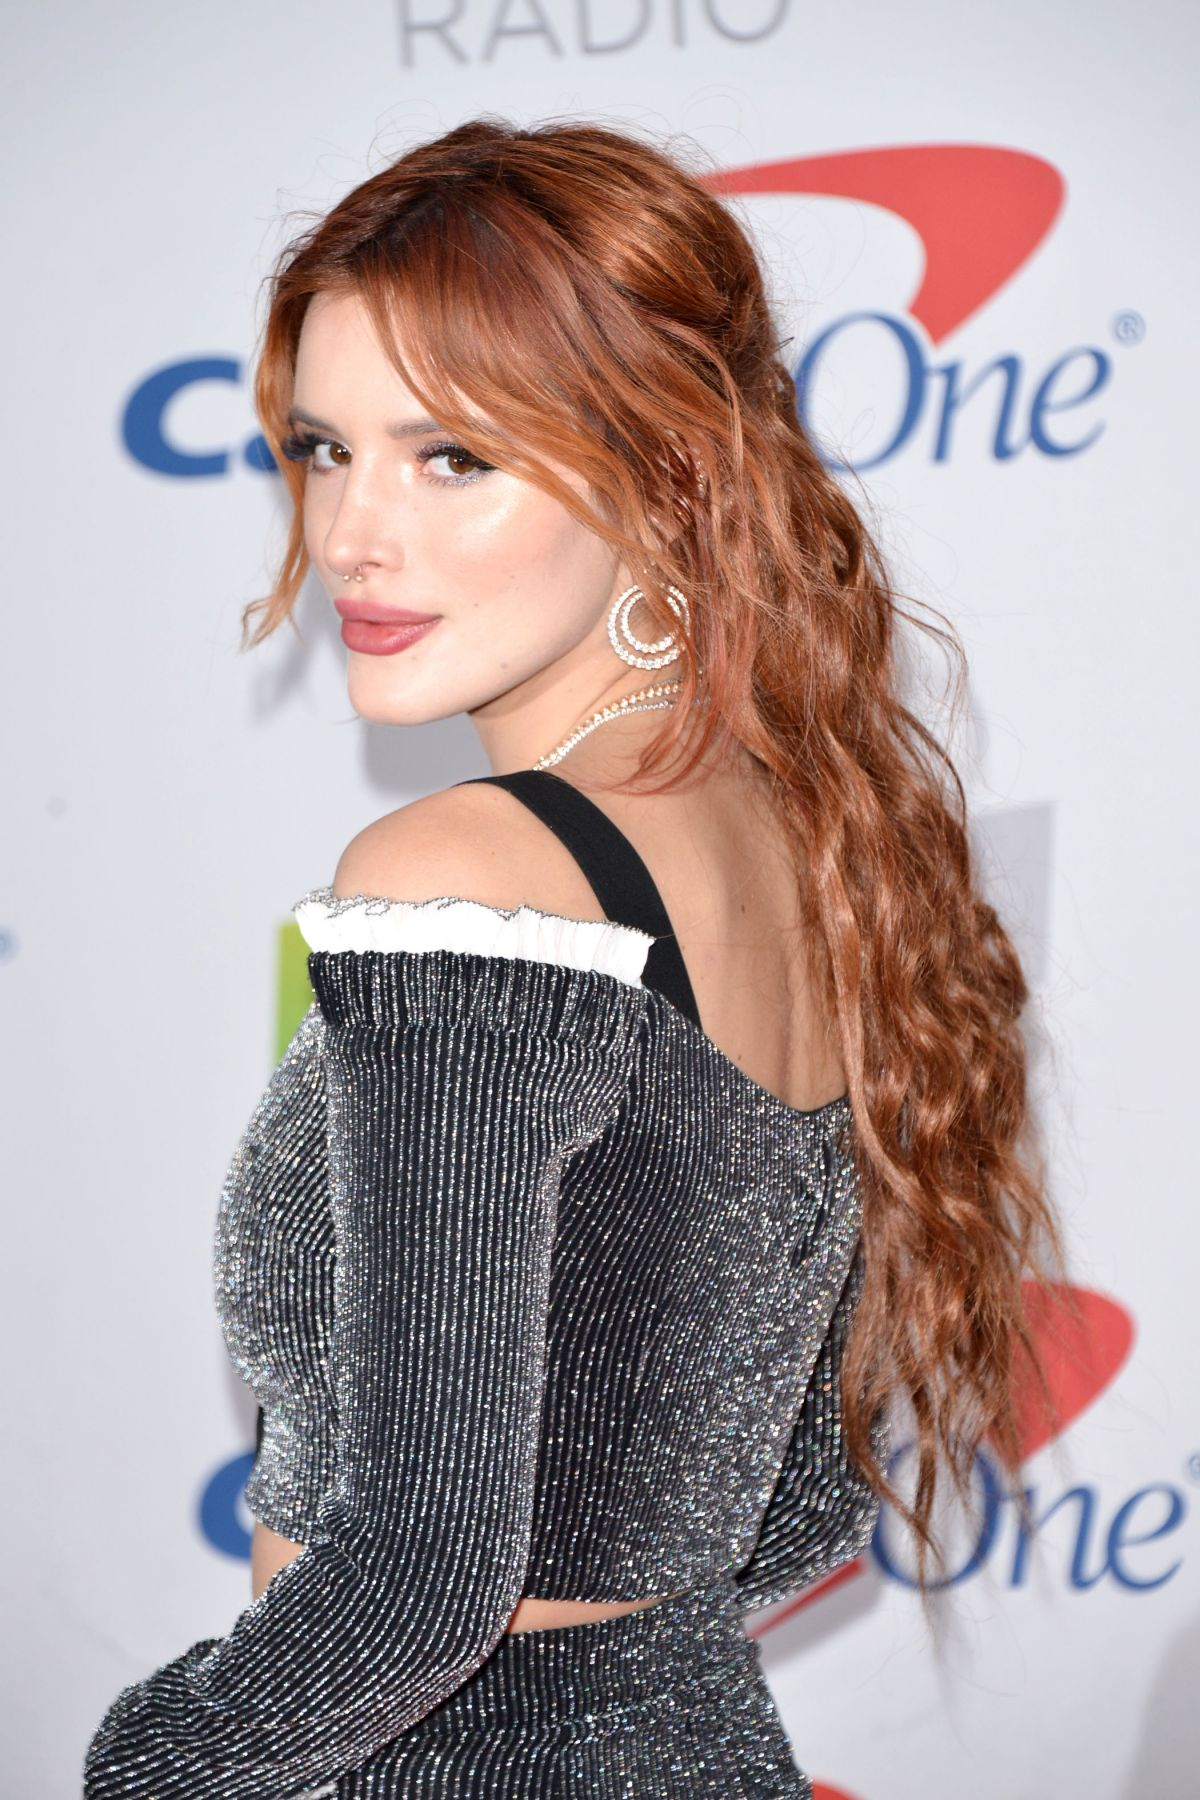 BELLA THORNE at Kiis FM's Jingle Ball in Los Angeles 12/01 ...